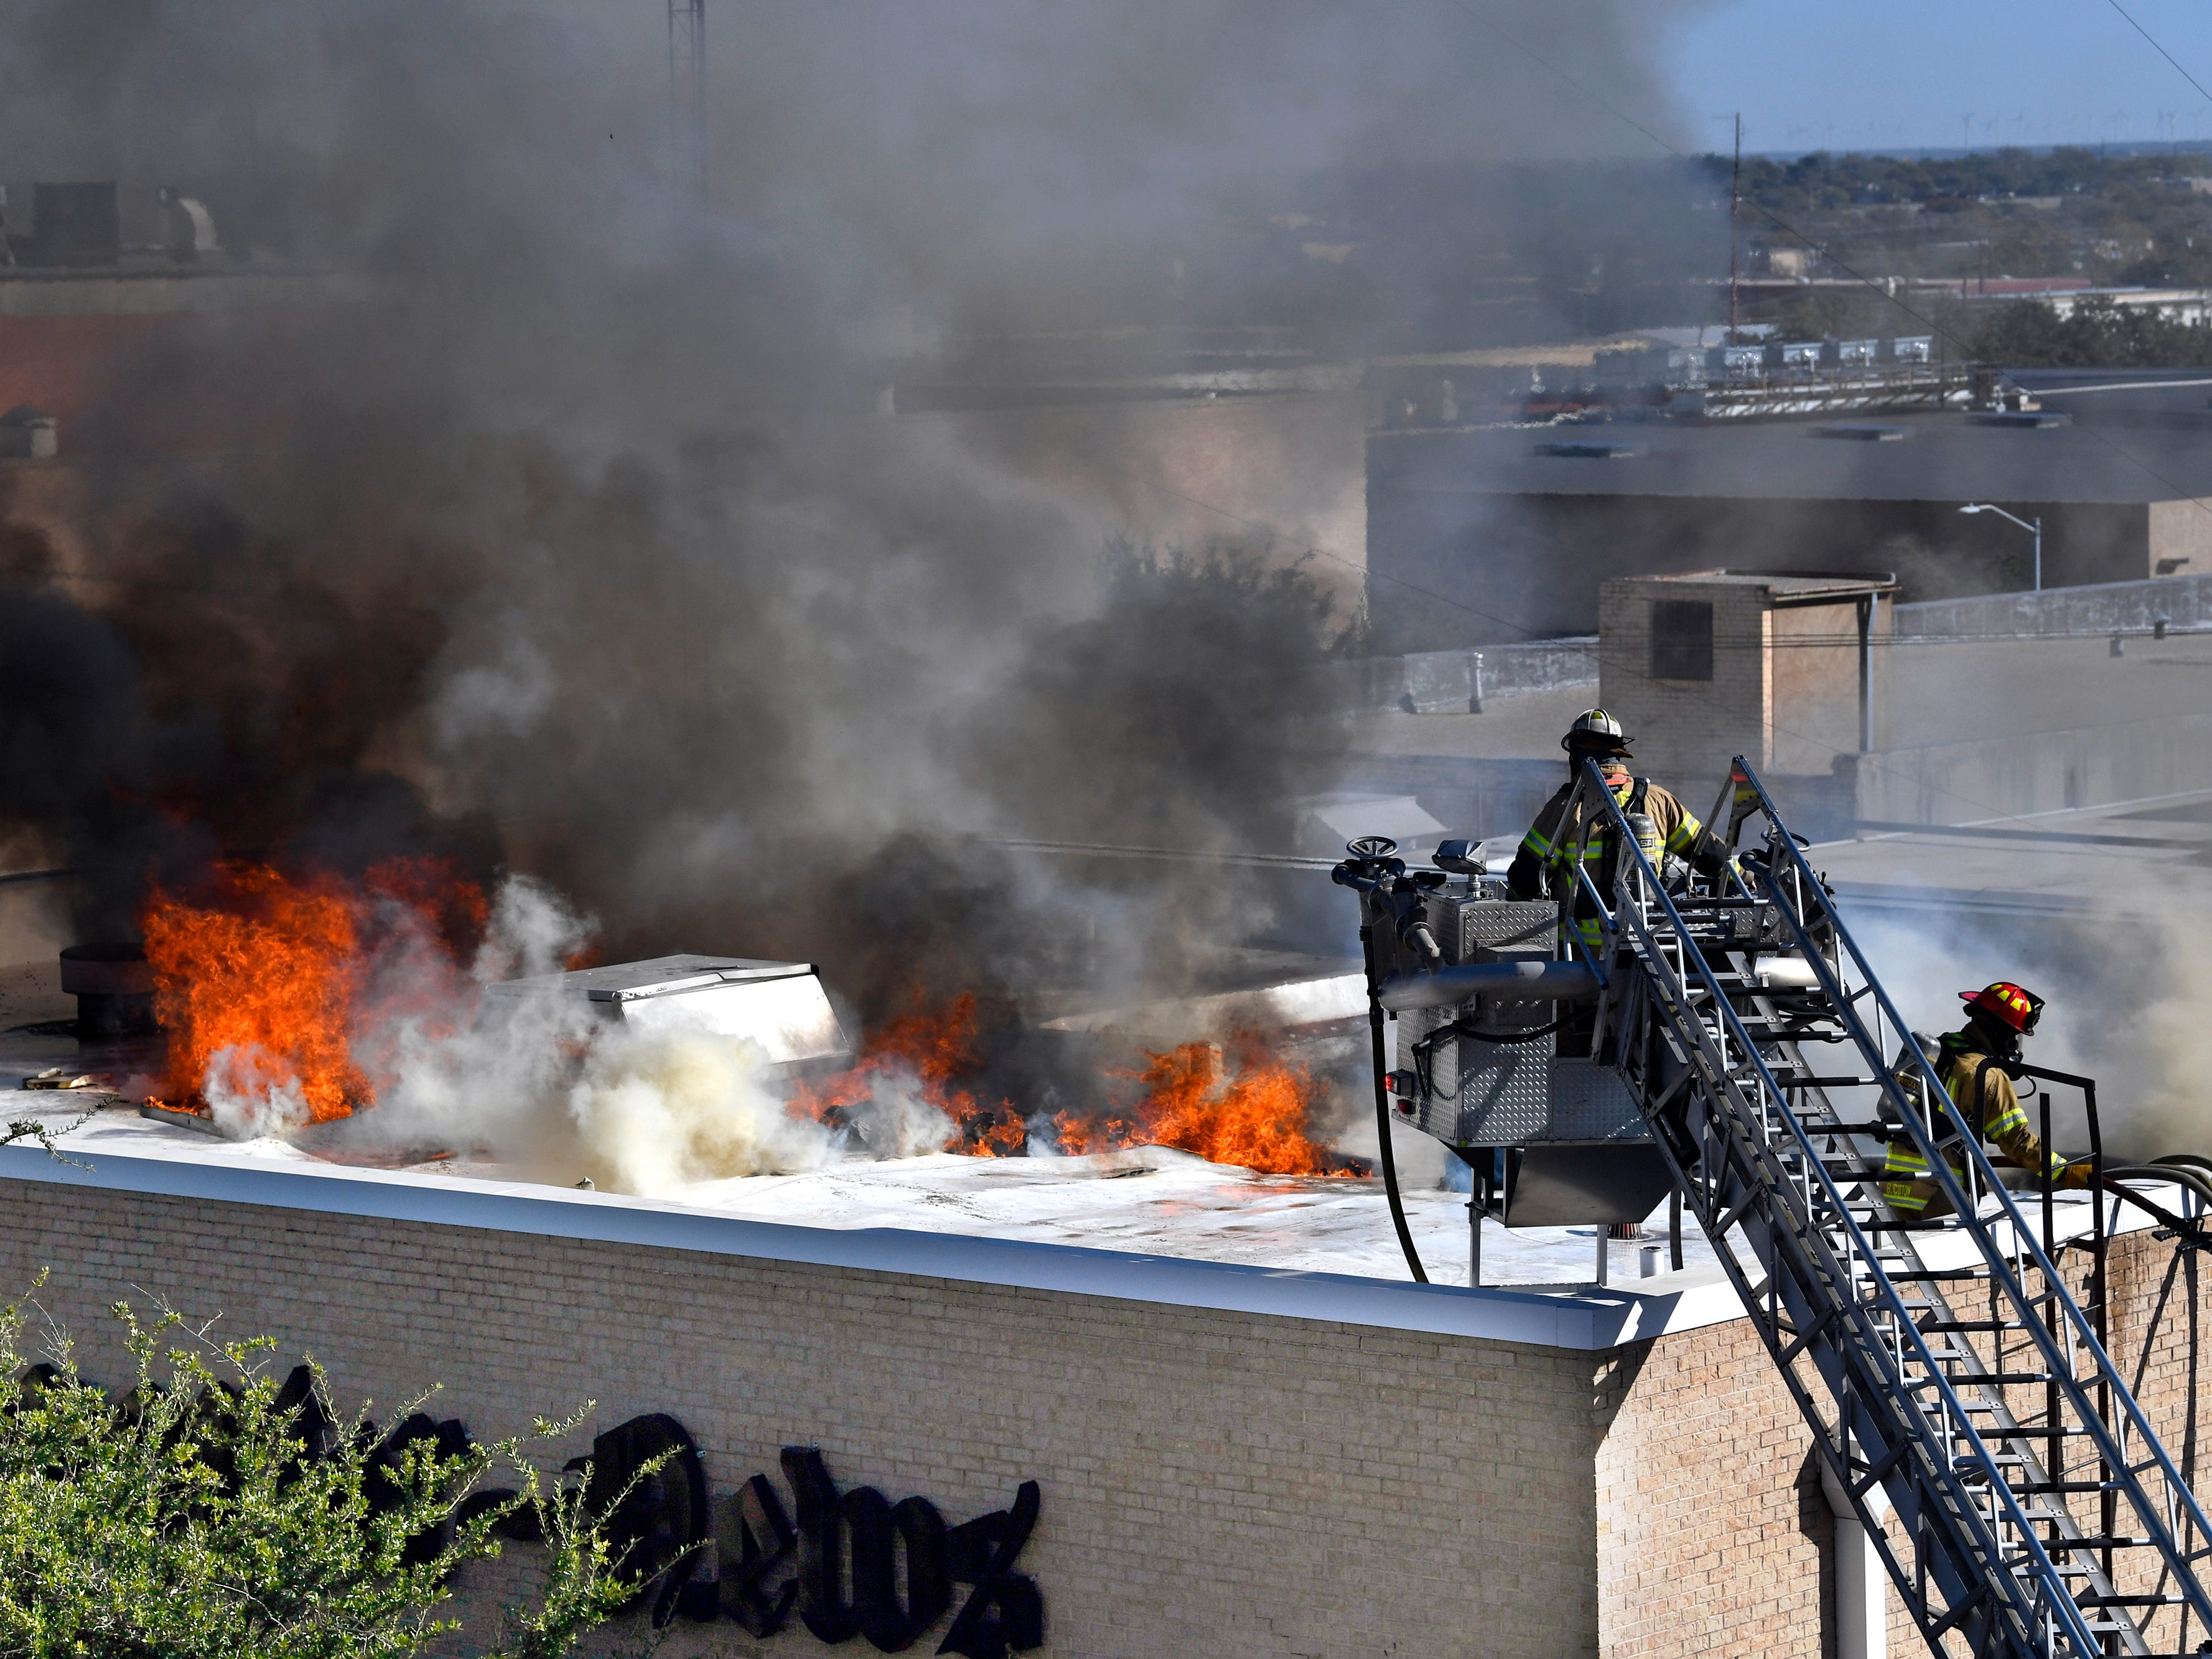 Abilene Reporter-News staff evacuated, building severely damaged by 2-alarm fire